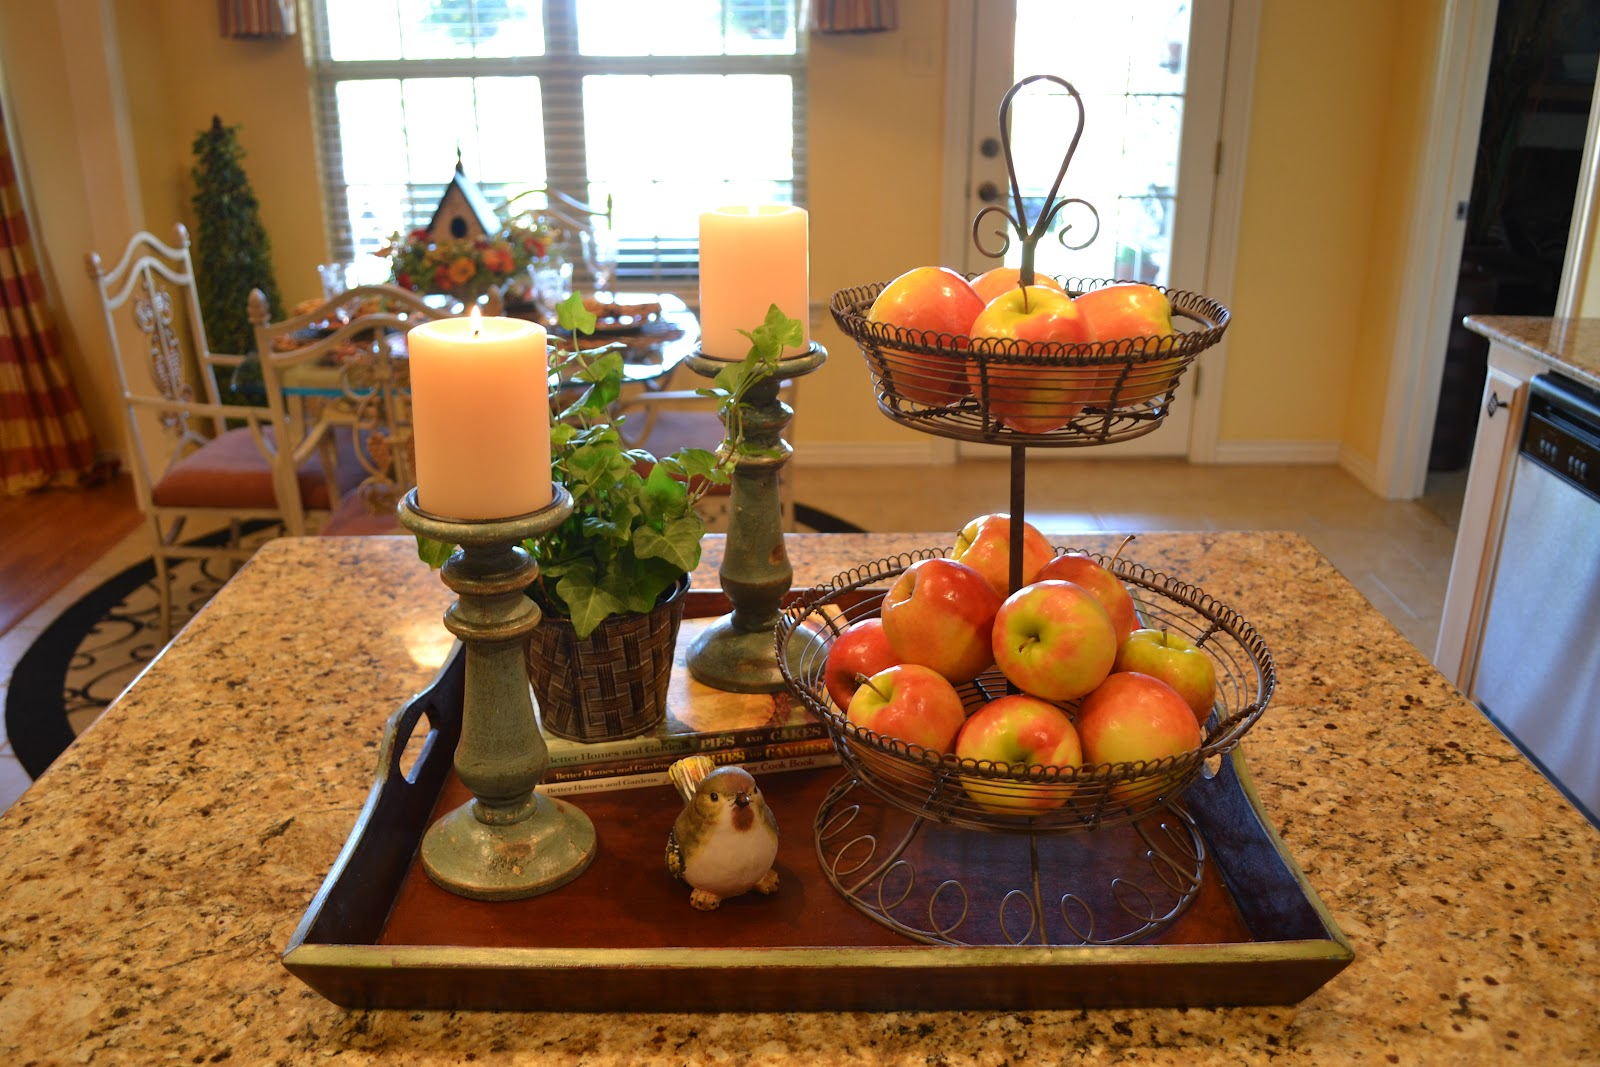 Fabulous Kitchen Table Centerpieces Presented With Bright